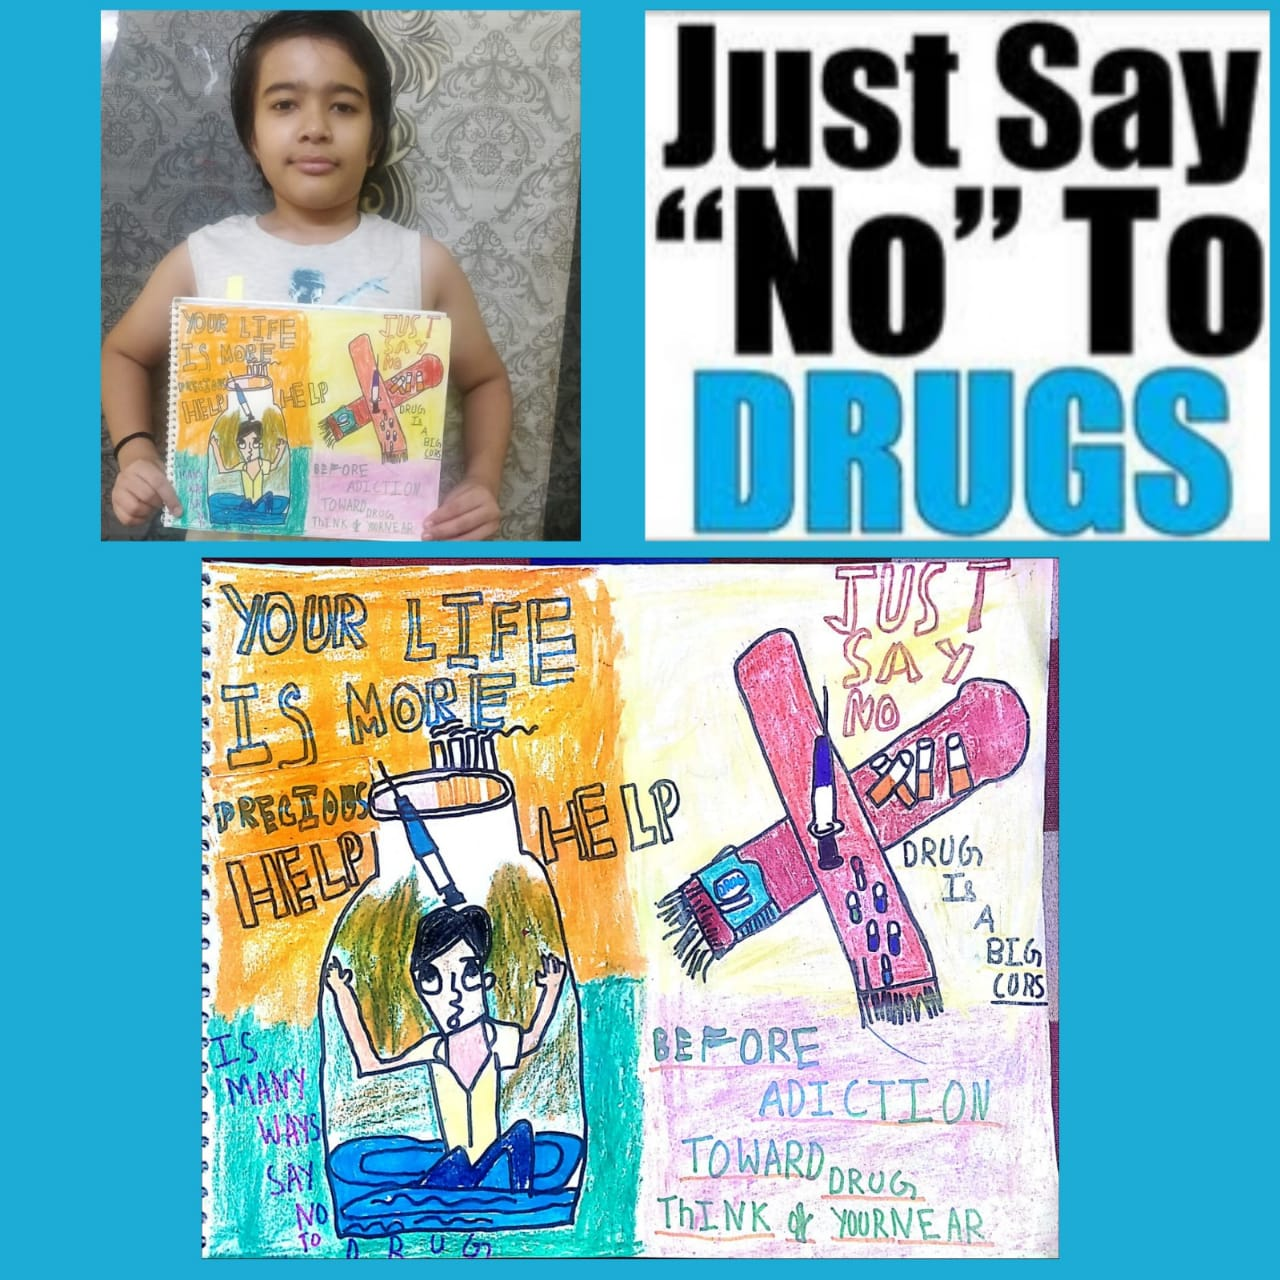 International Day Against Drugs